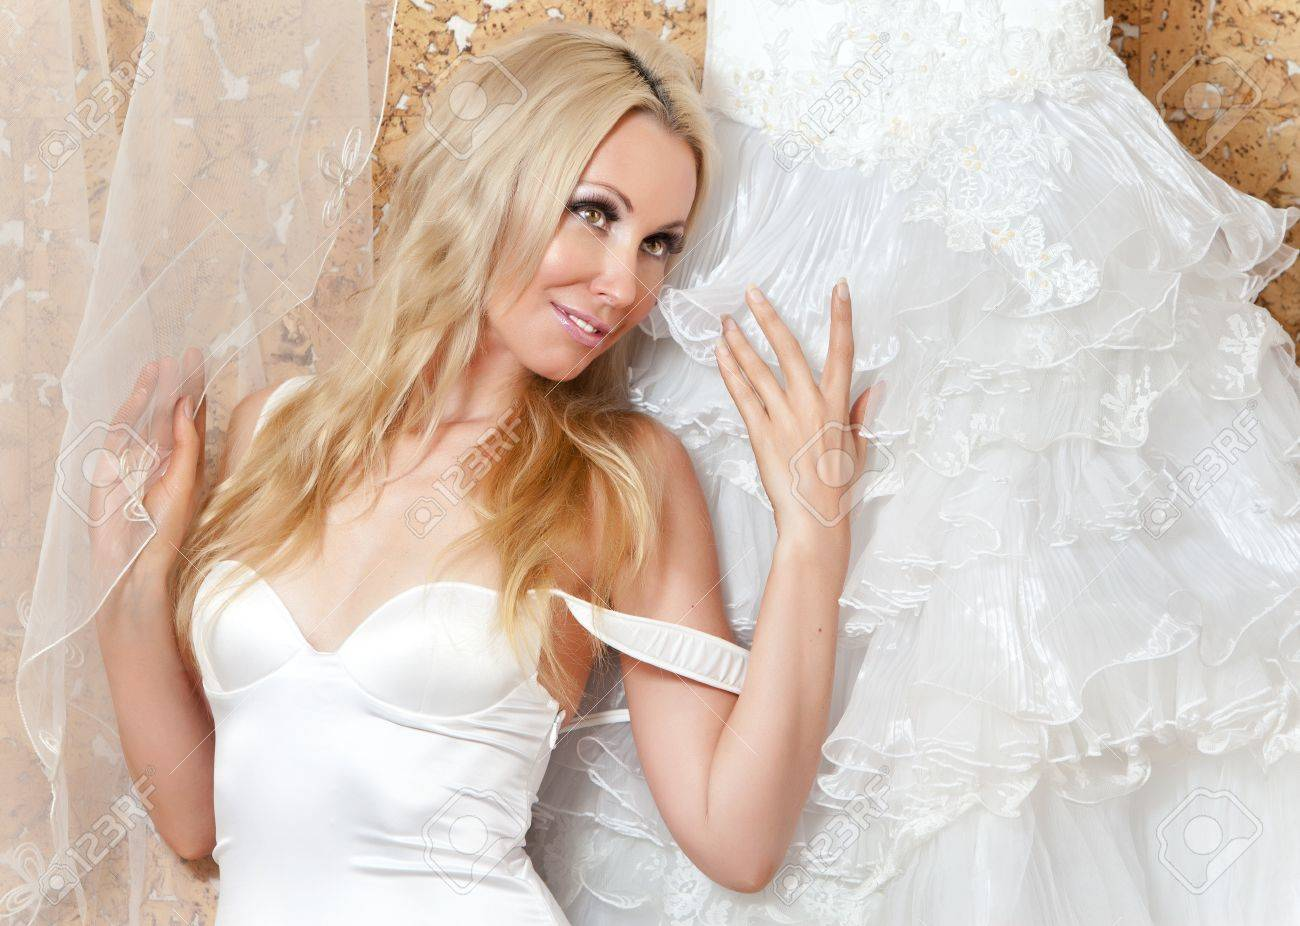 The happy bride tries on a wedding dress Stock Photo - 9751118